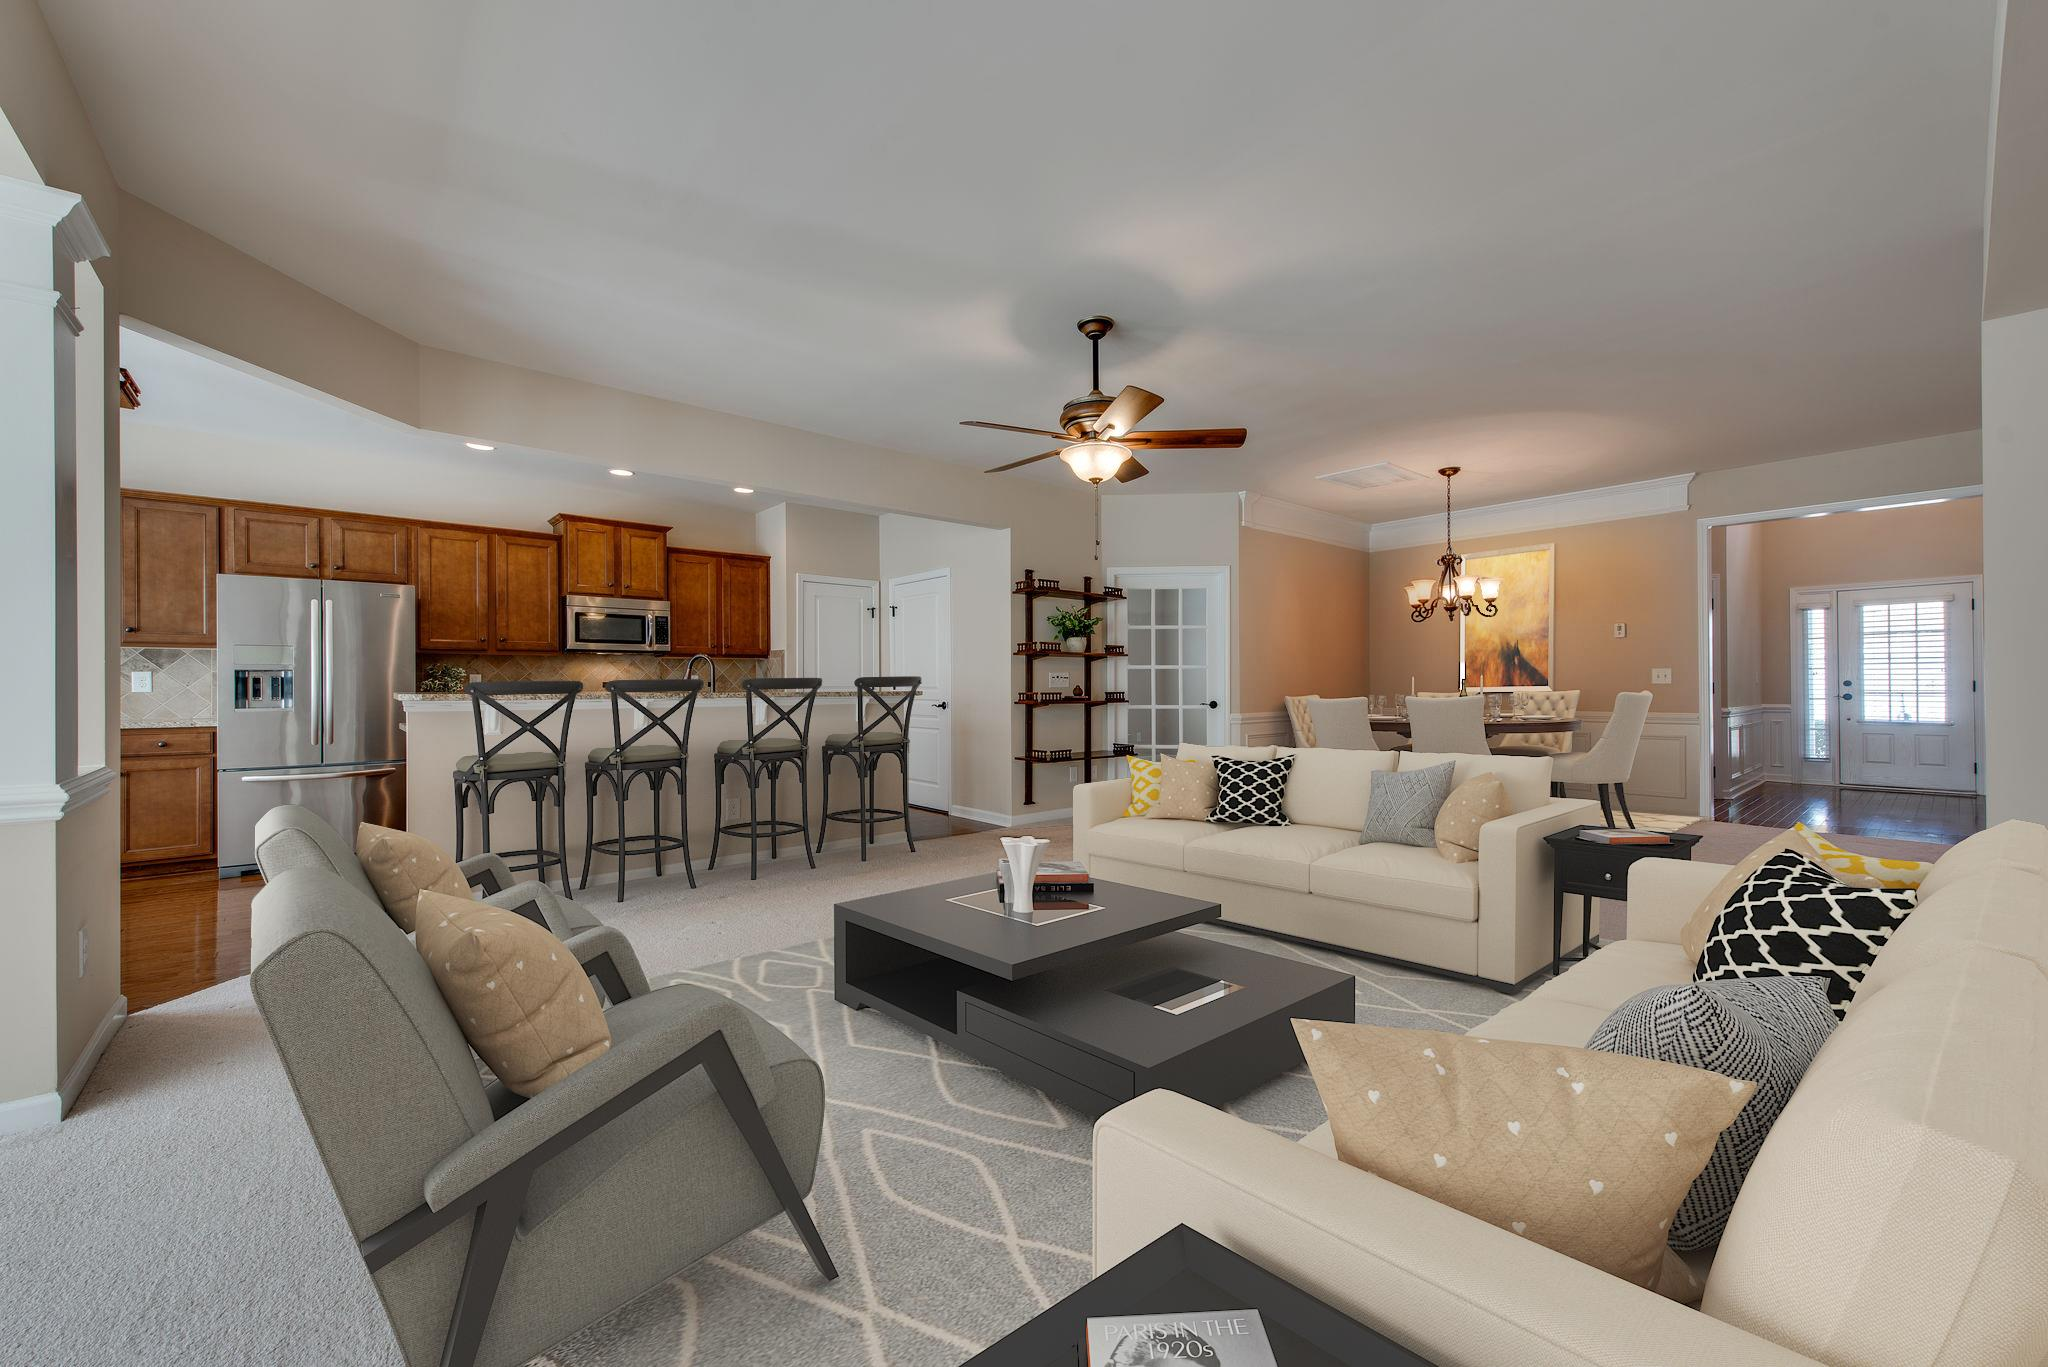 """The highly desirable """"Vernon Hill""""  floorplan located in Del Webb...the hottest active 55+ community in the Greater Nashville area! This is not just a wonderful high-end home, it's a lifestyle! Fun activities, friendly people, beautiful surroundings and so many opportunities to stay healthy and fit!!"""